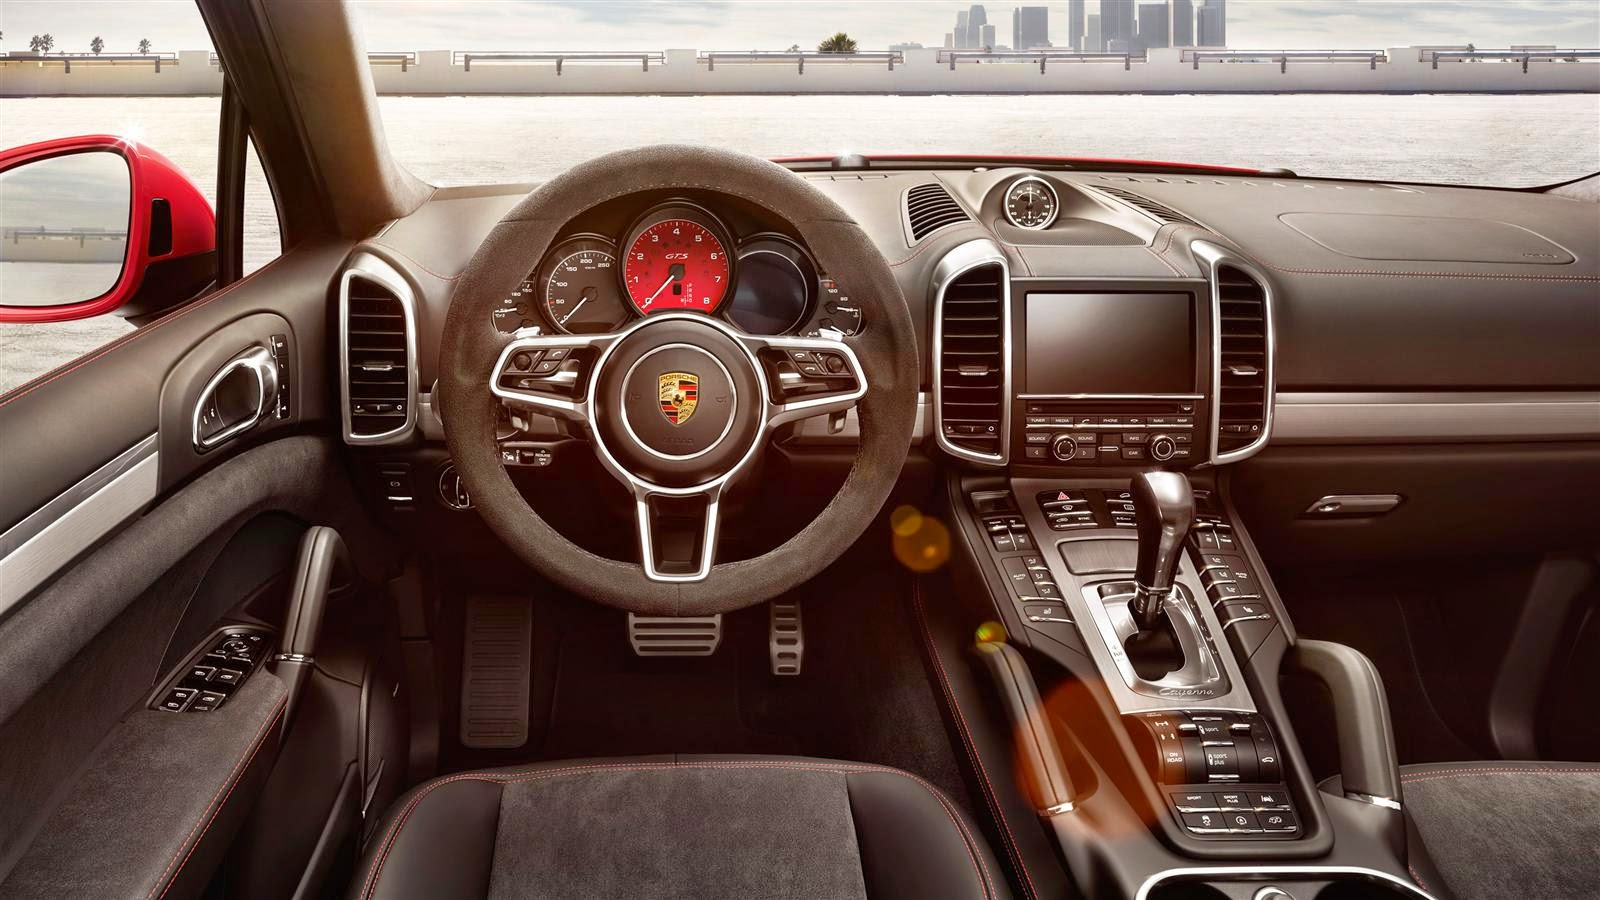 Soon at aaa luxury sport car rental check out our black porsche cayenne gts available now www aaarentcars com rent rent porsche cayenne gts html